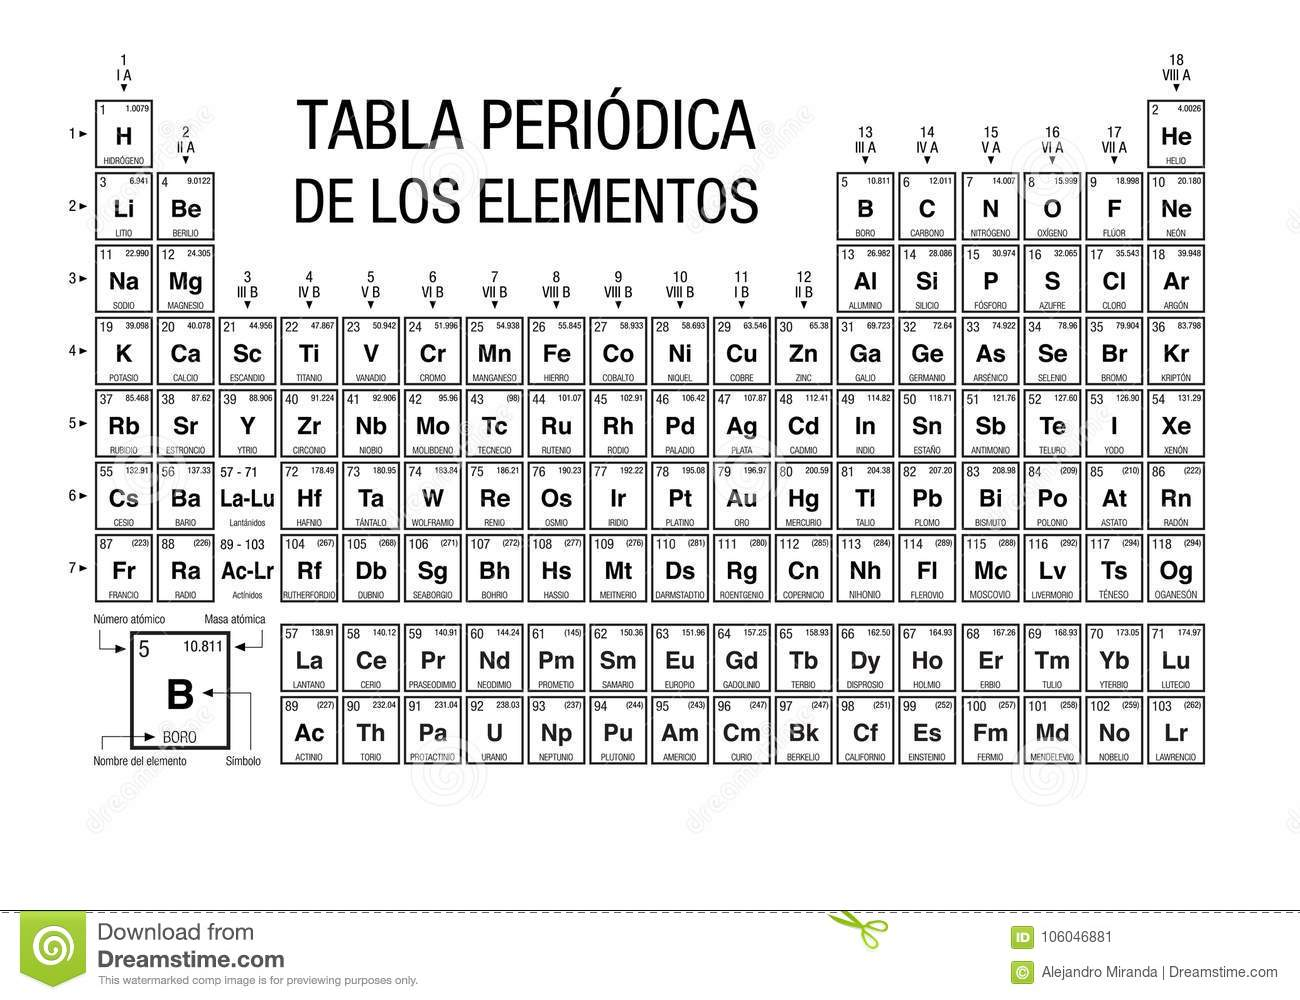 Tabla Periodica De Los Elementos Periodic Table Of Elements In